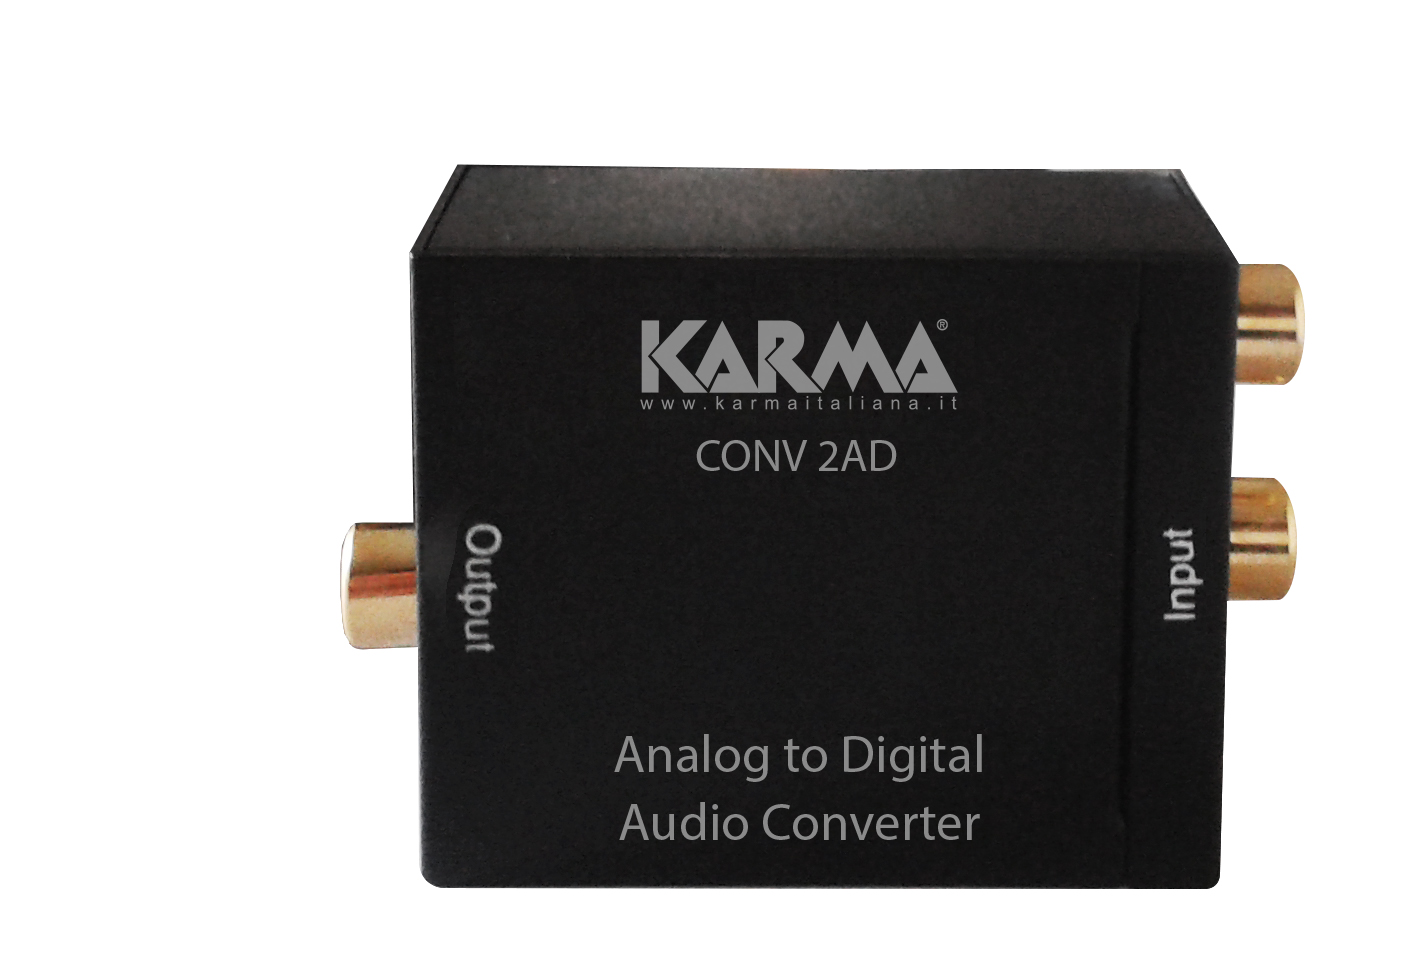 Convertitore audio analogico - digitale KARMA CONV 2AD